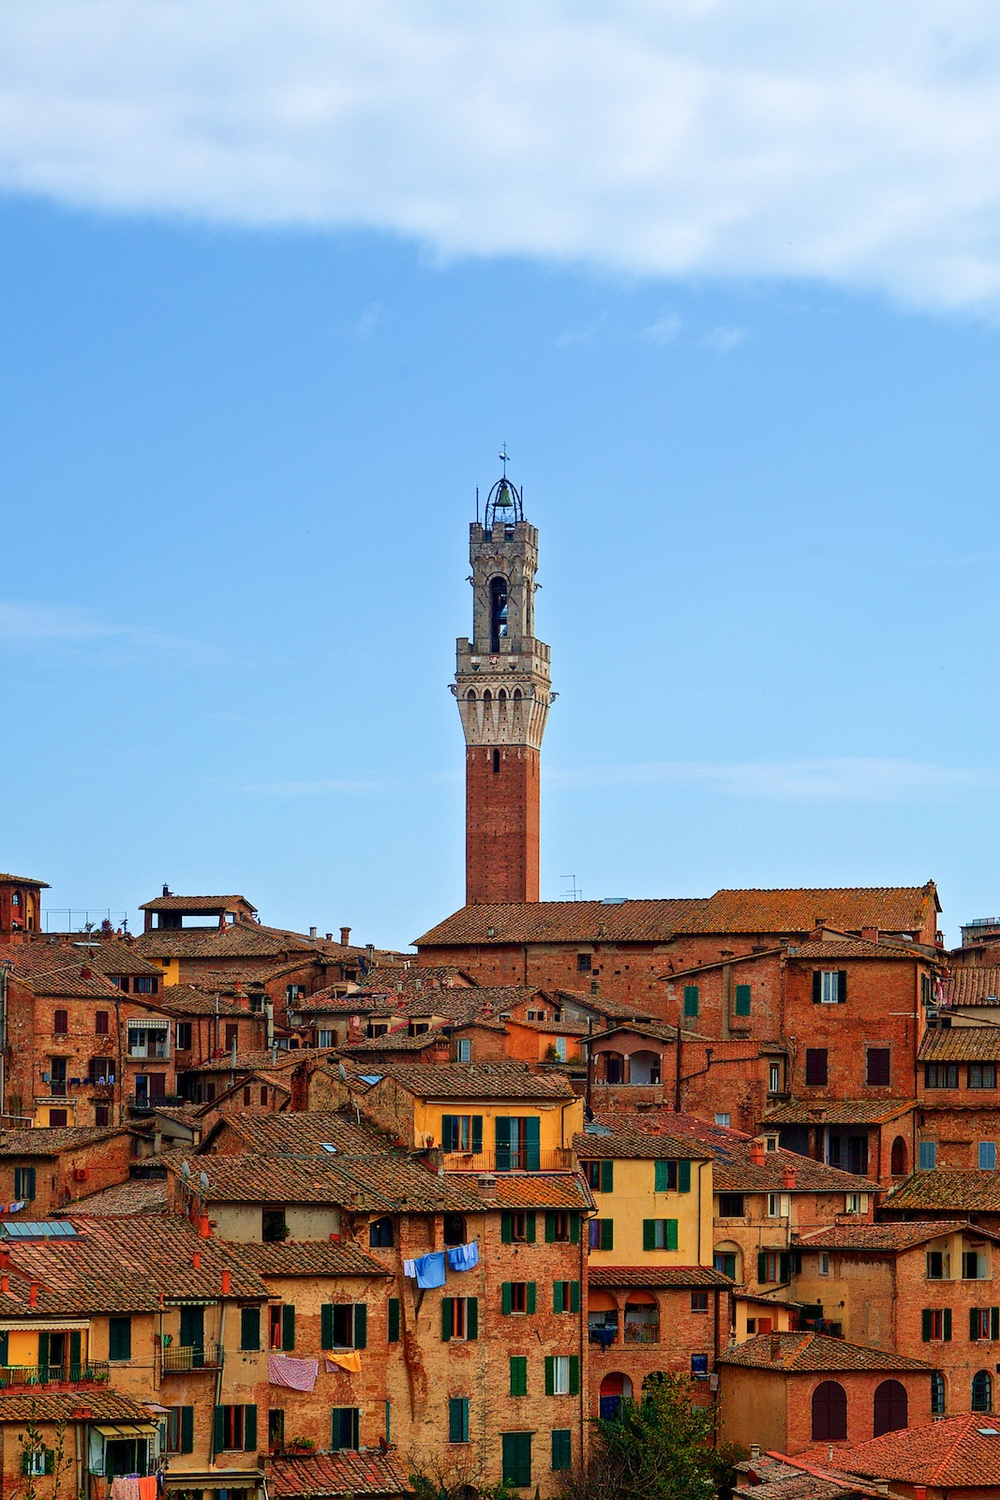 roofs-of-siena-toscana-tuscany-denis-bosnic-photography- 1.jpg